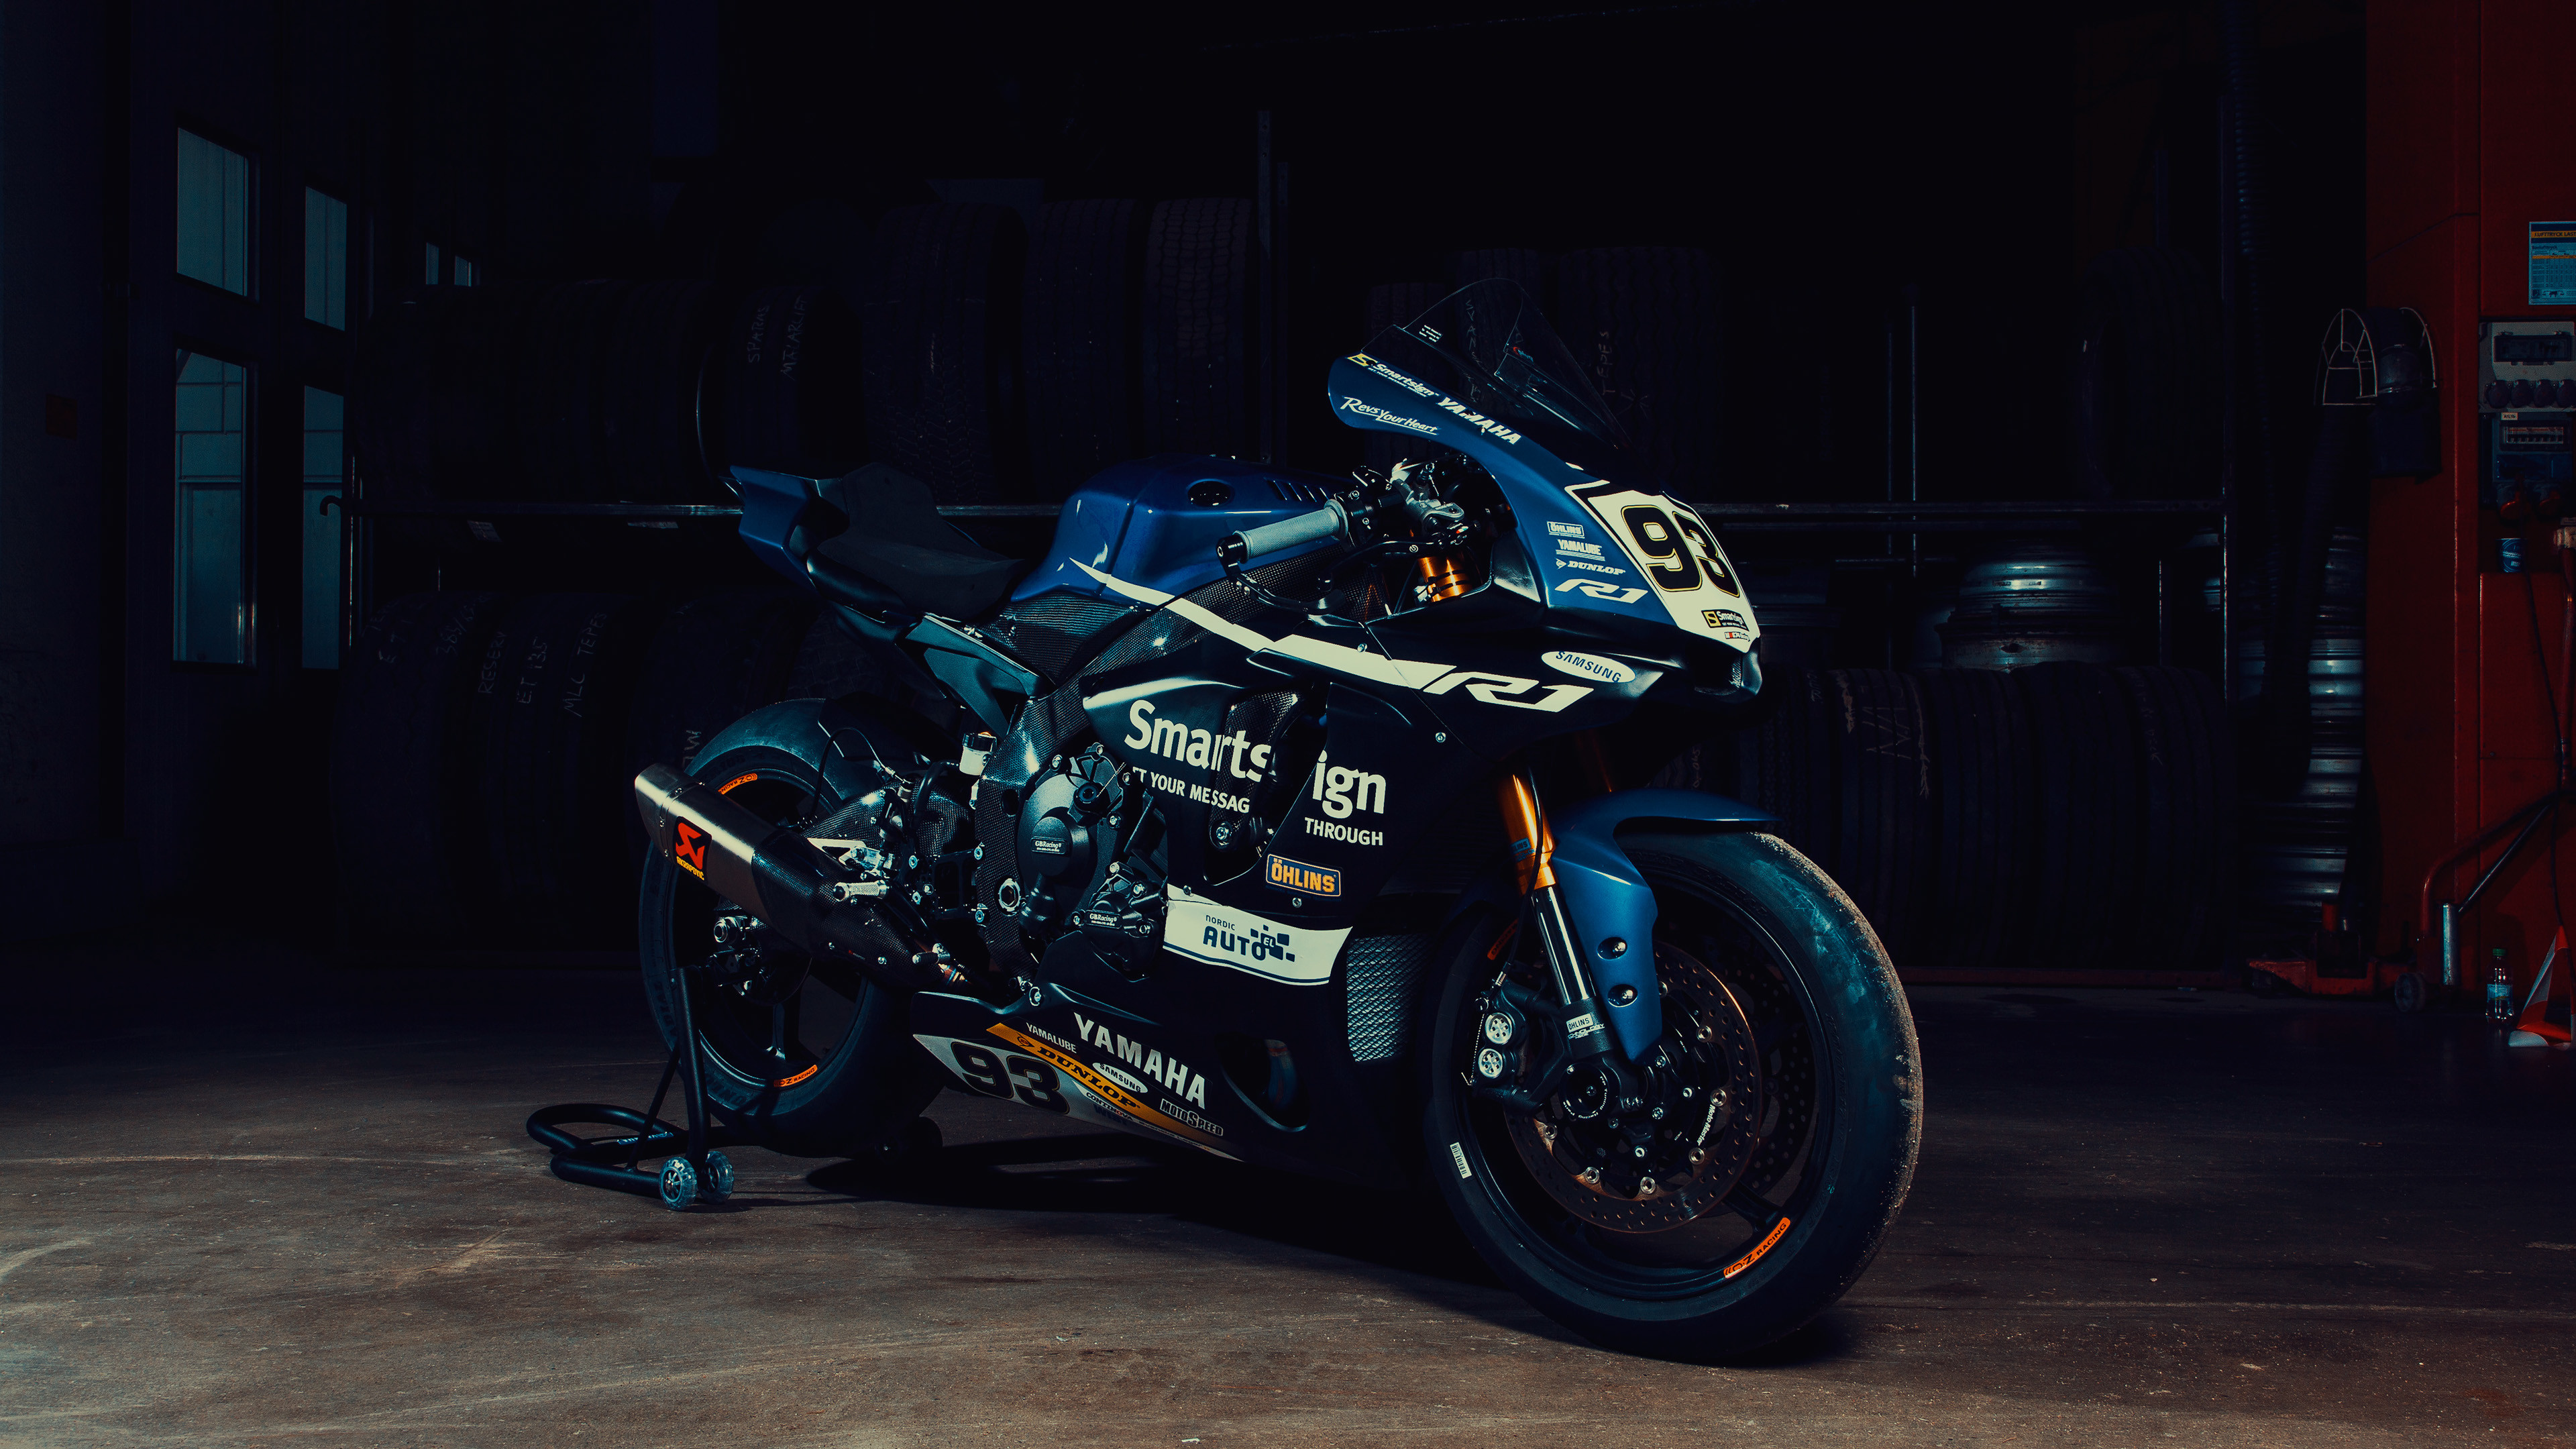 fredrik ericsson yamaha r1 front view 1536316623 - Fredrik Ericsson Yamaha R1 Front View - yamaha wallpapers, yamaha r1 wallpapers, hd-wallpapers, bikes wallpapers, behance wallpapers, artist wallpapers, 4k-wallpapers, 2018 bikes wallpapers